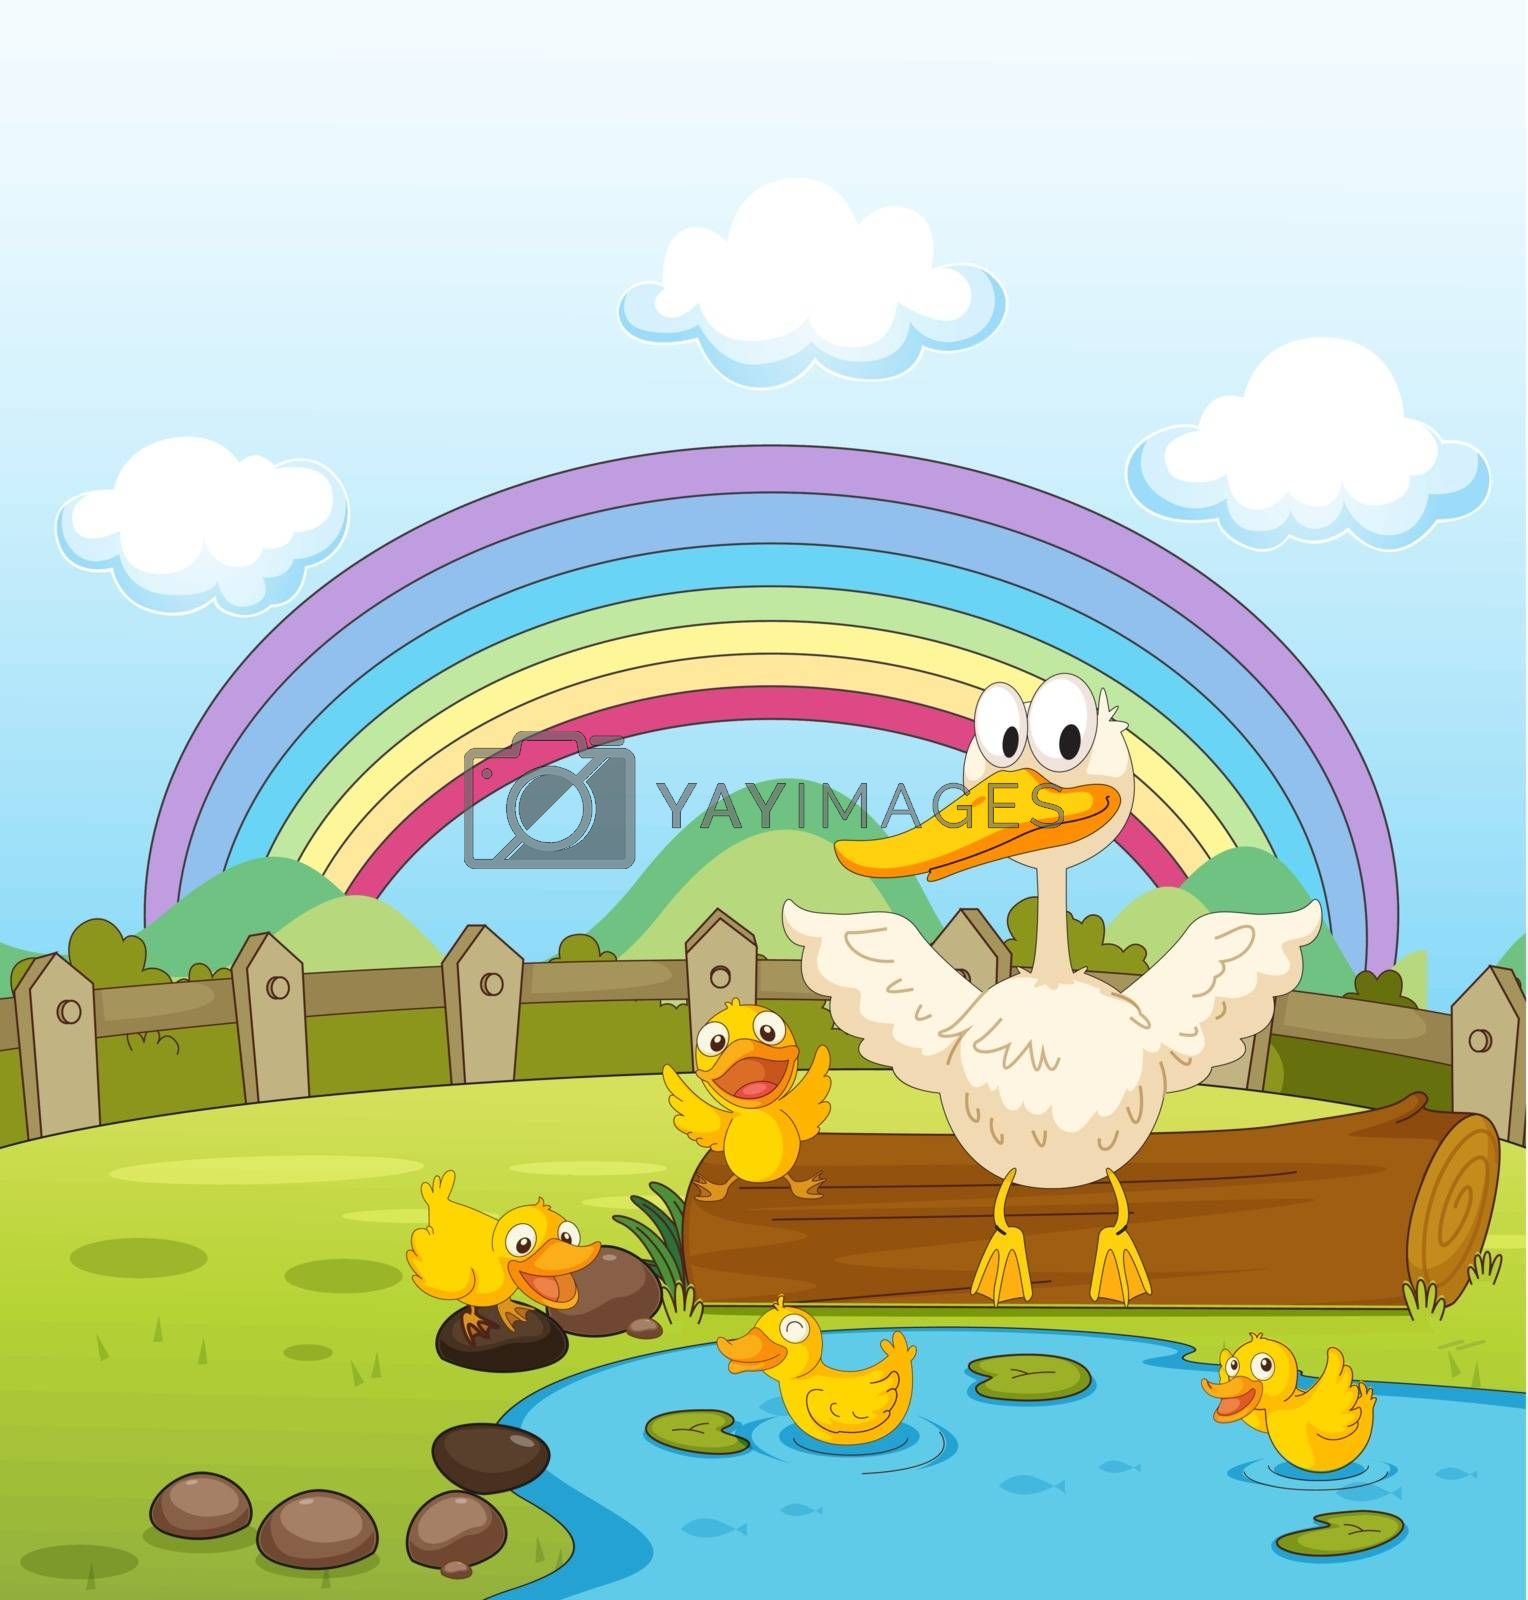 Illustration of ducks and a rainbow in nature